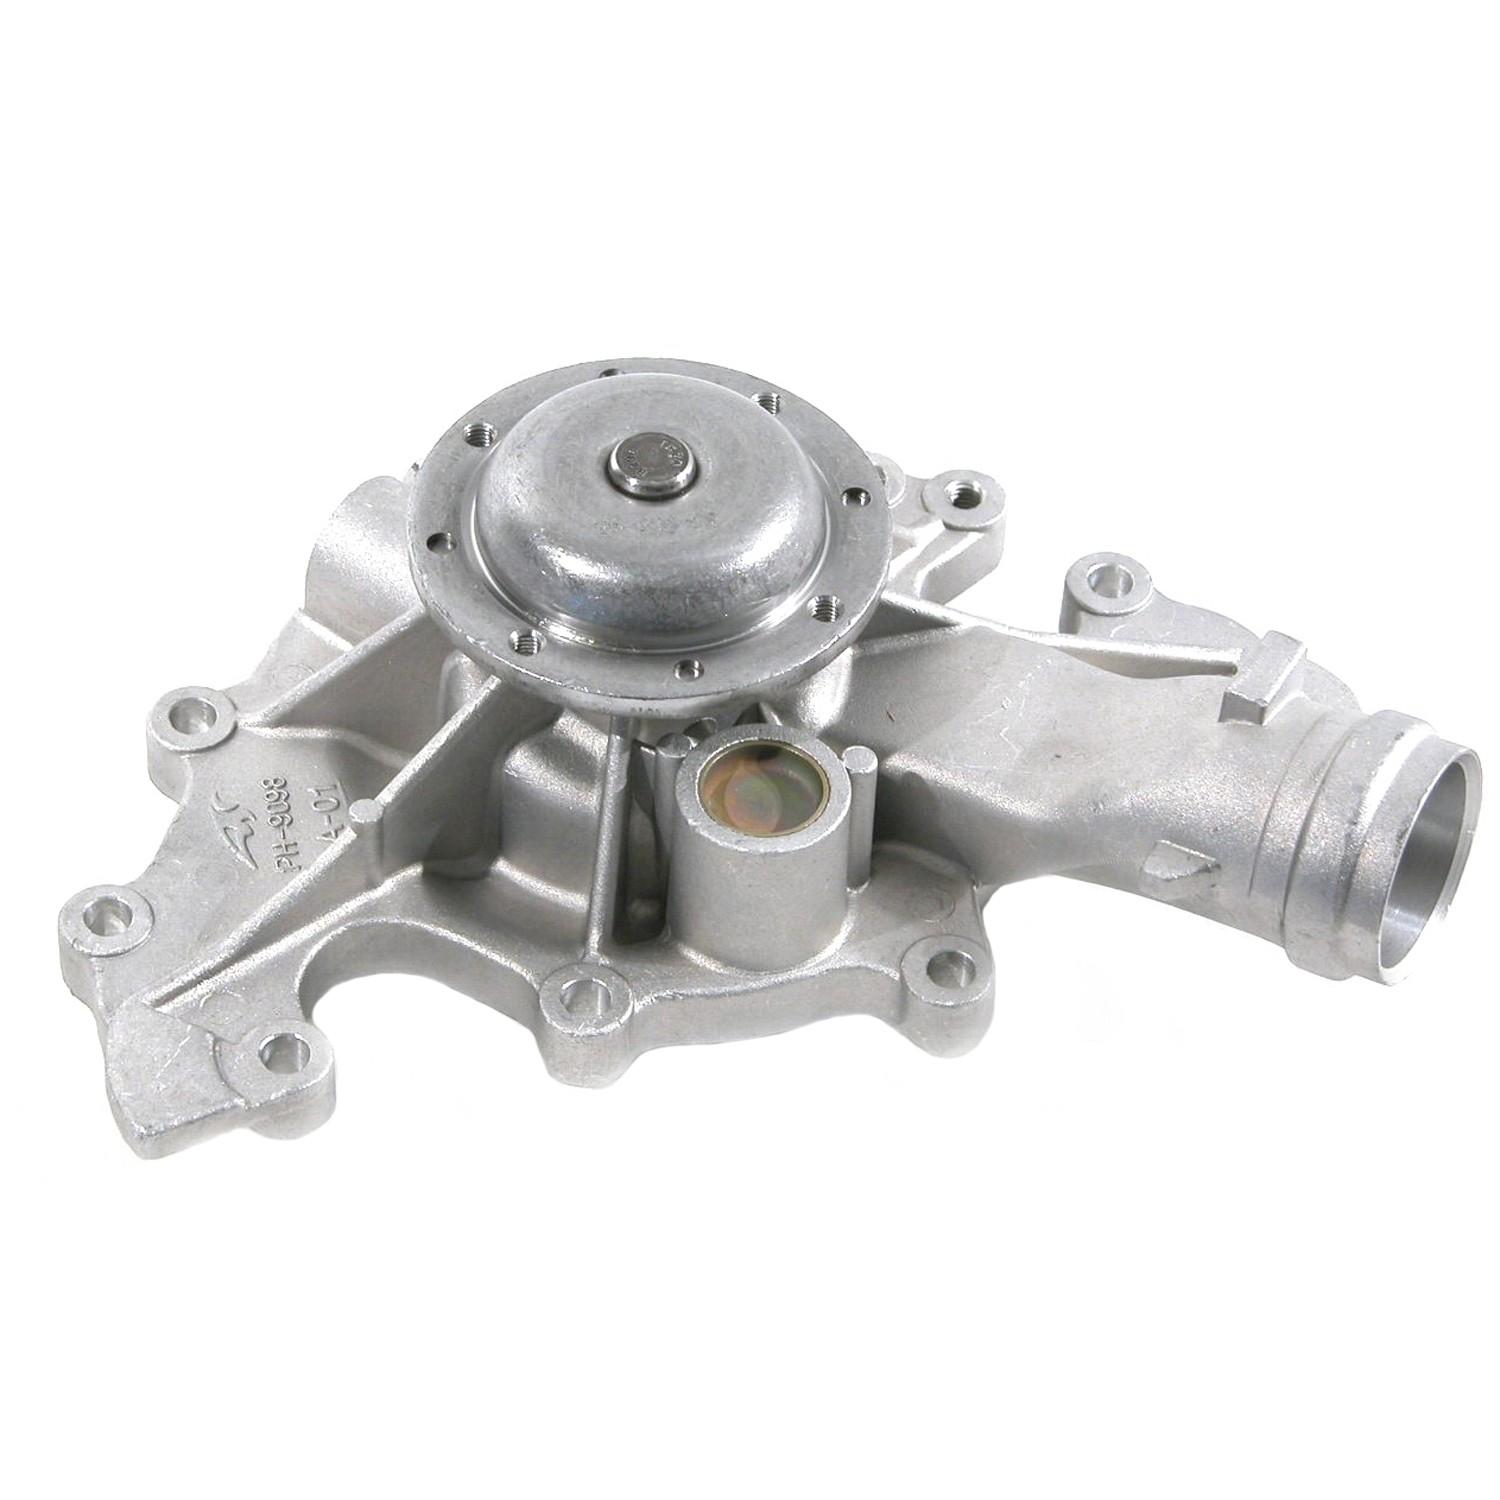 2003 Ford Windstar Engine Water Pump Aw Aw4102